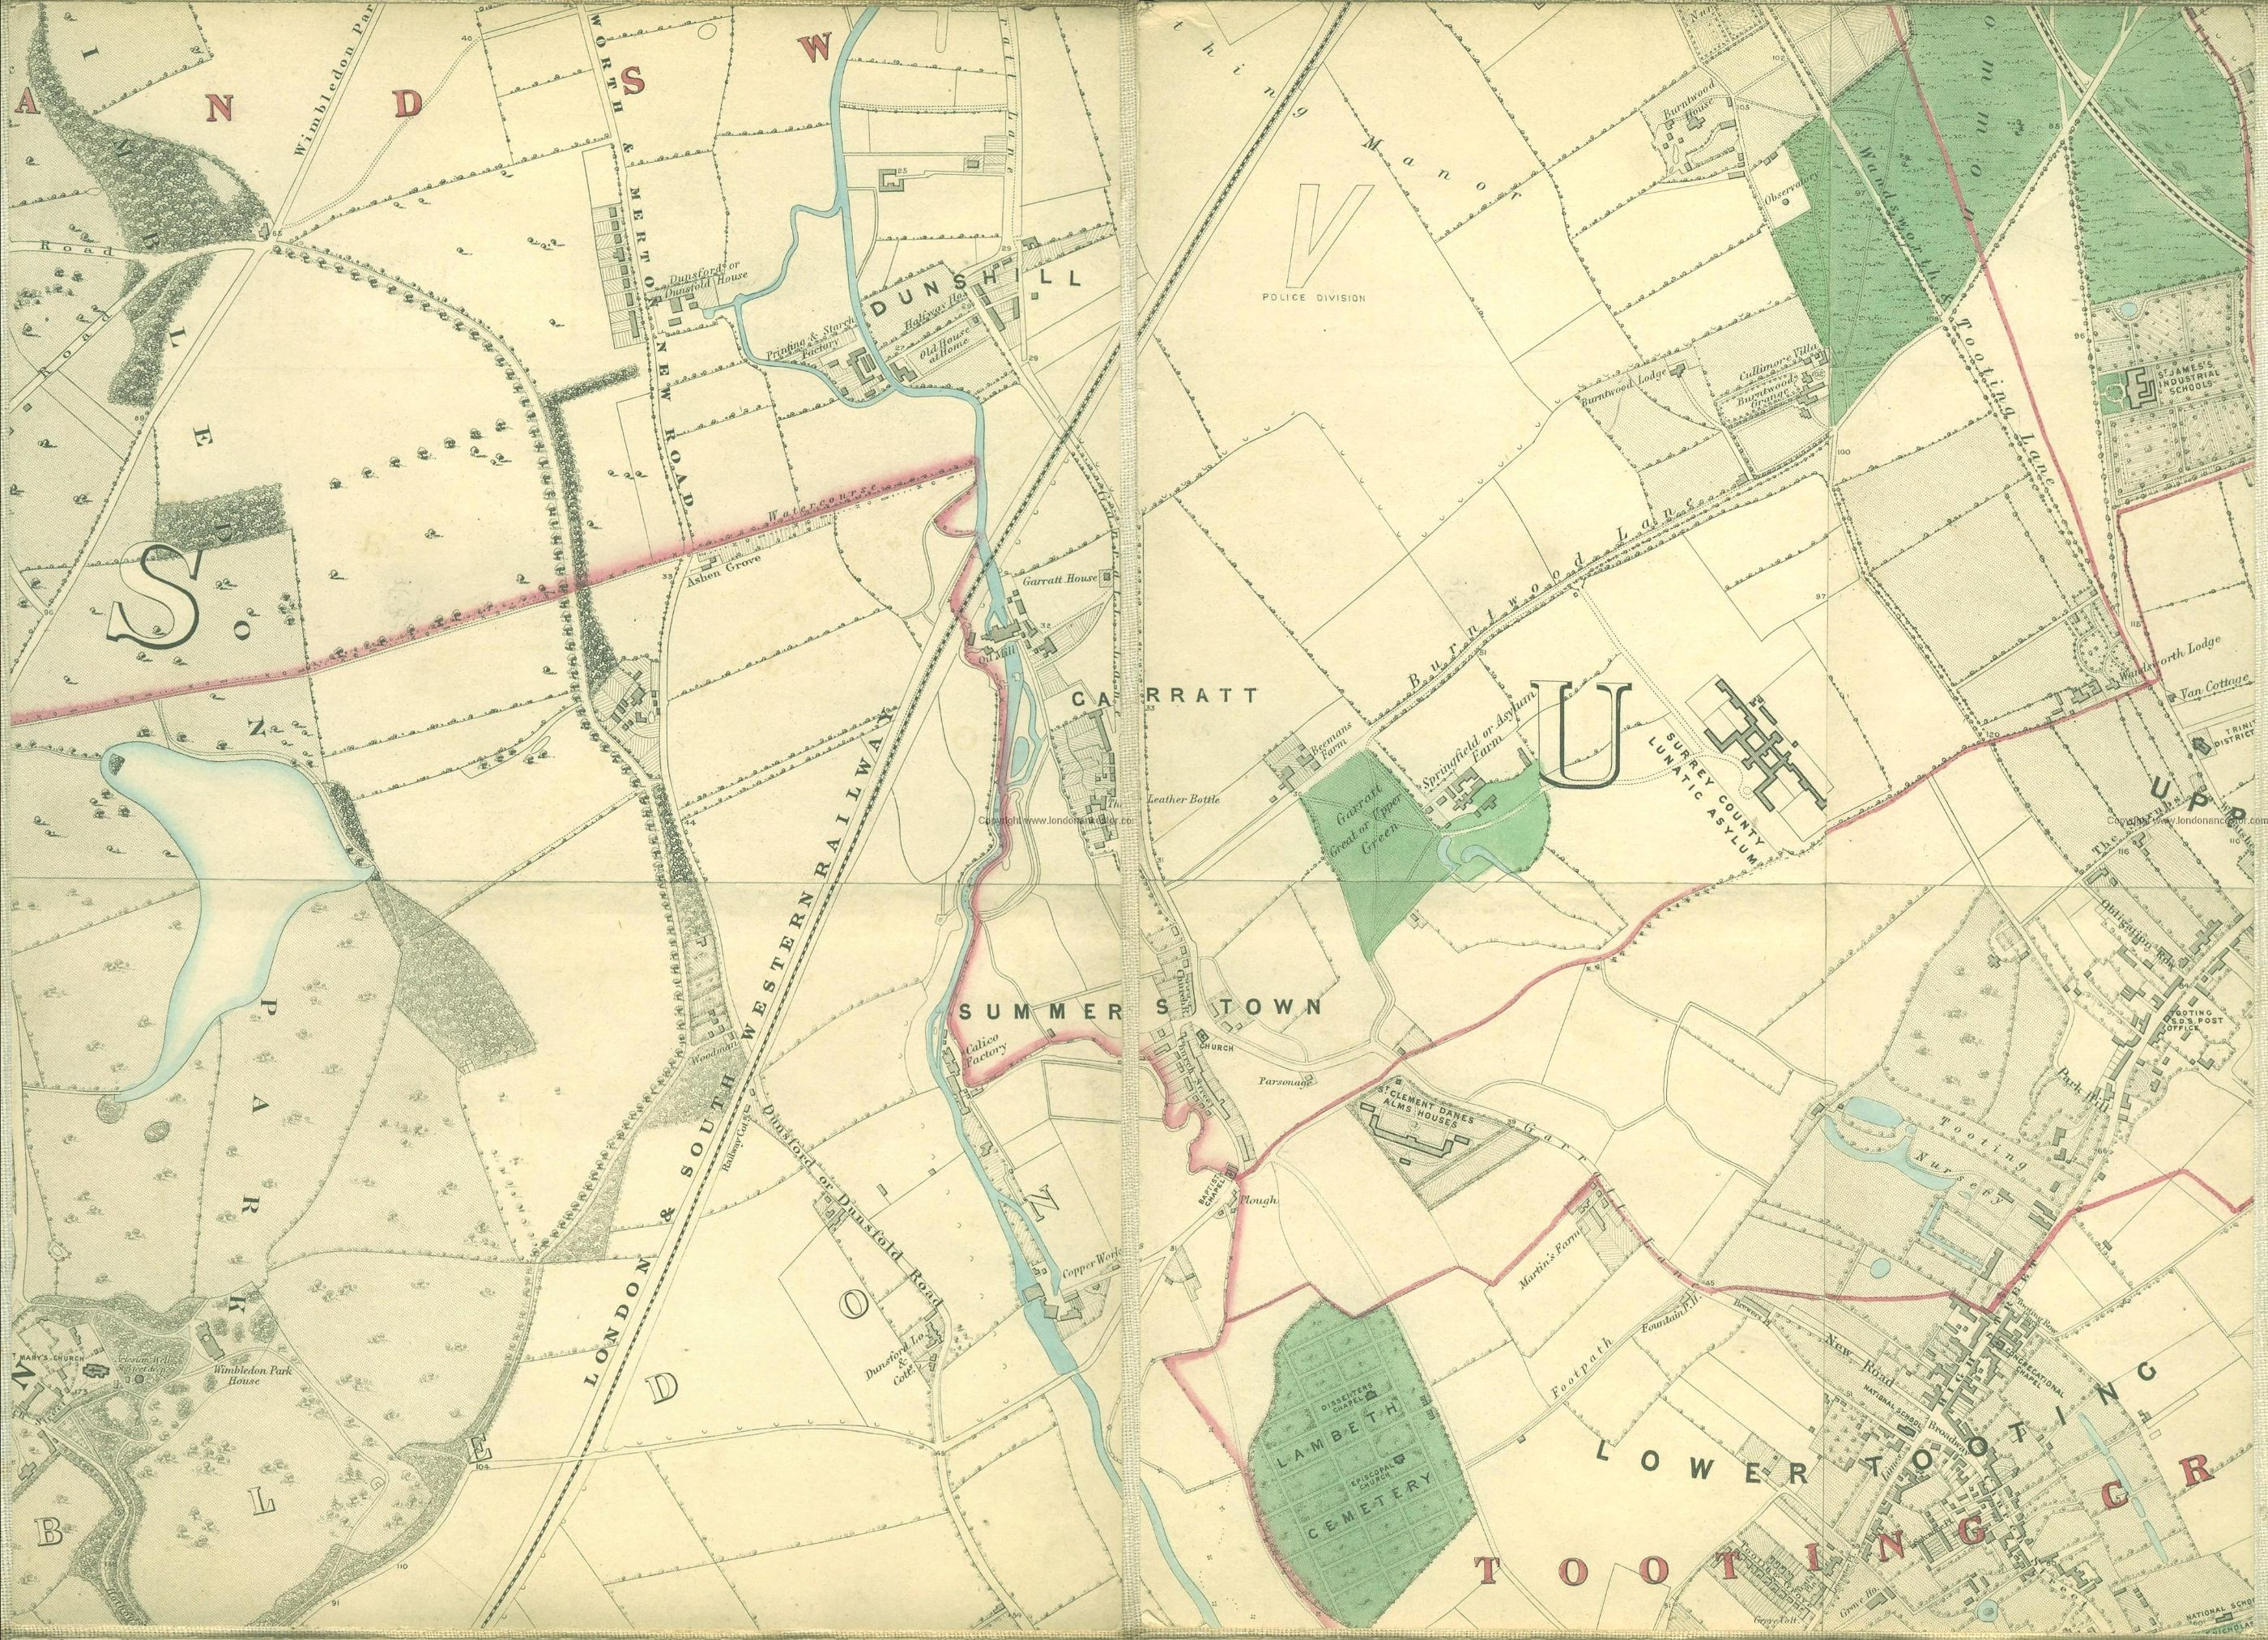 Map of Summerstown in 1862